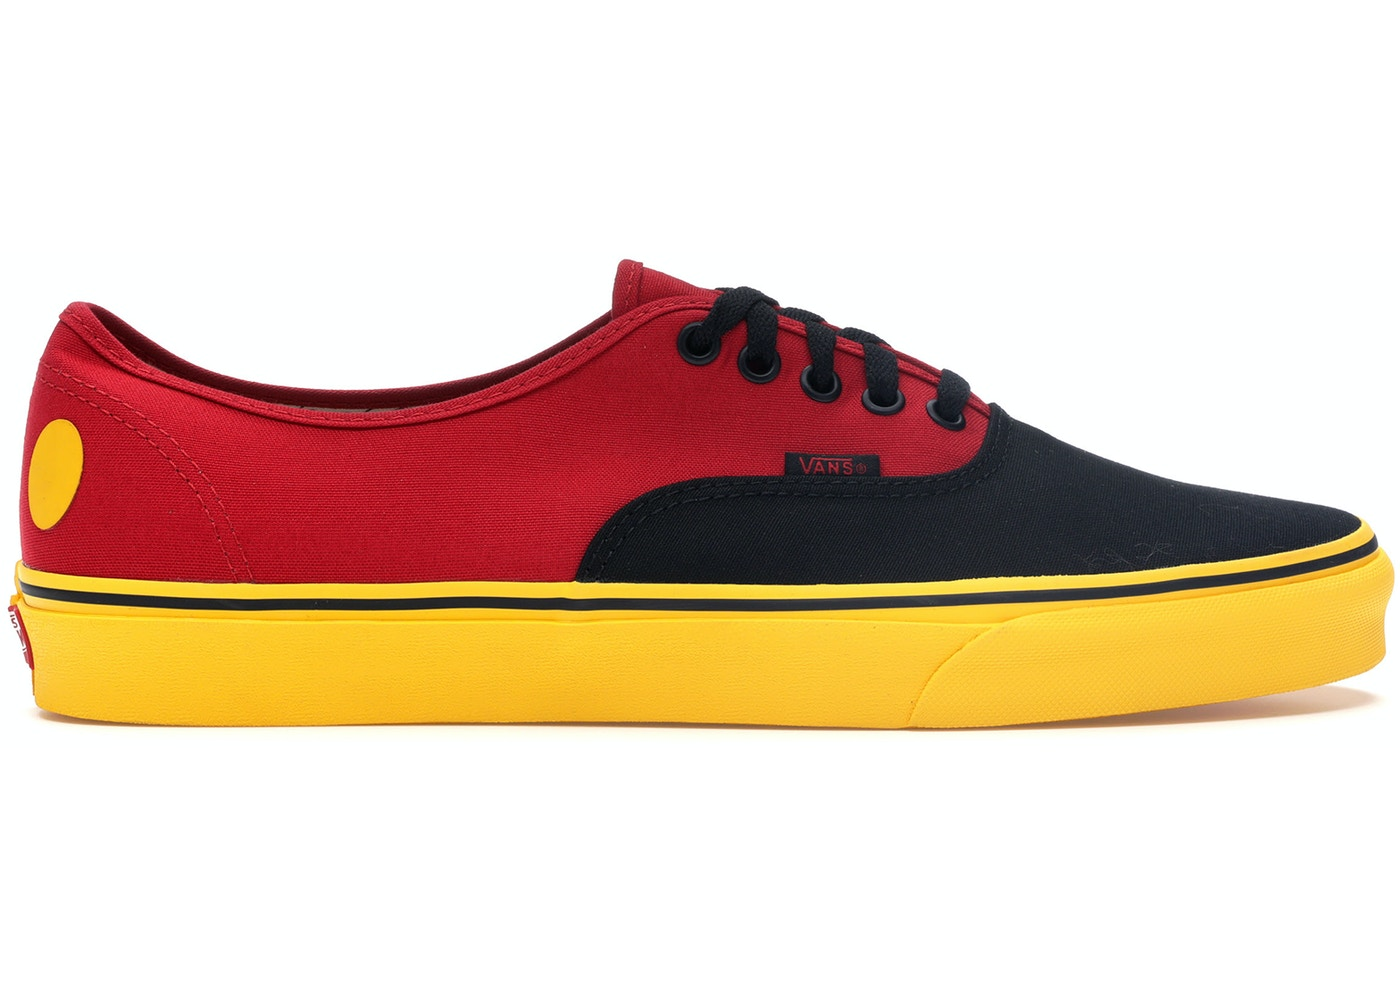 puerta campo permanecer  Vans Authentic Disney Mickey Mouse - Sneakers